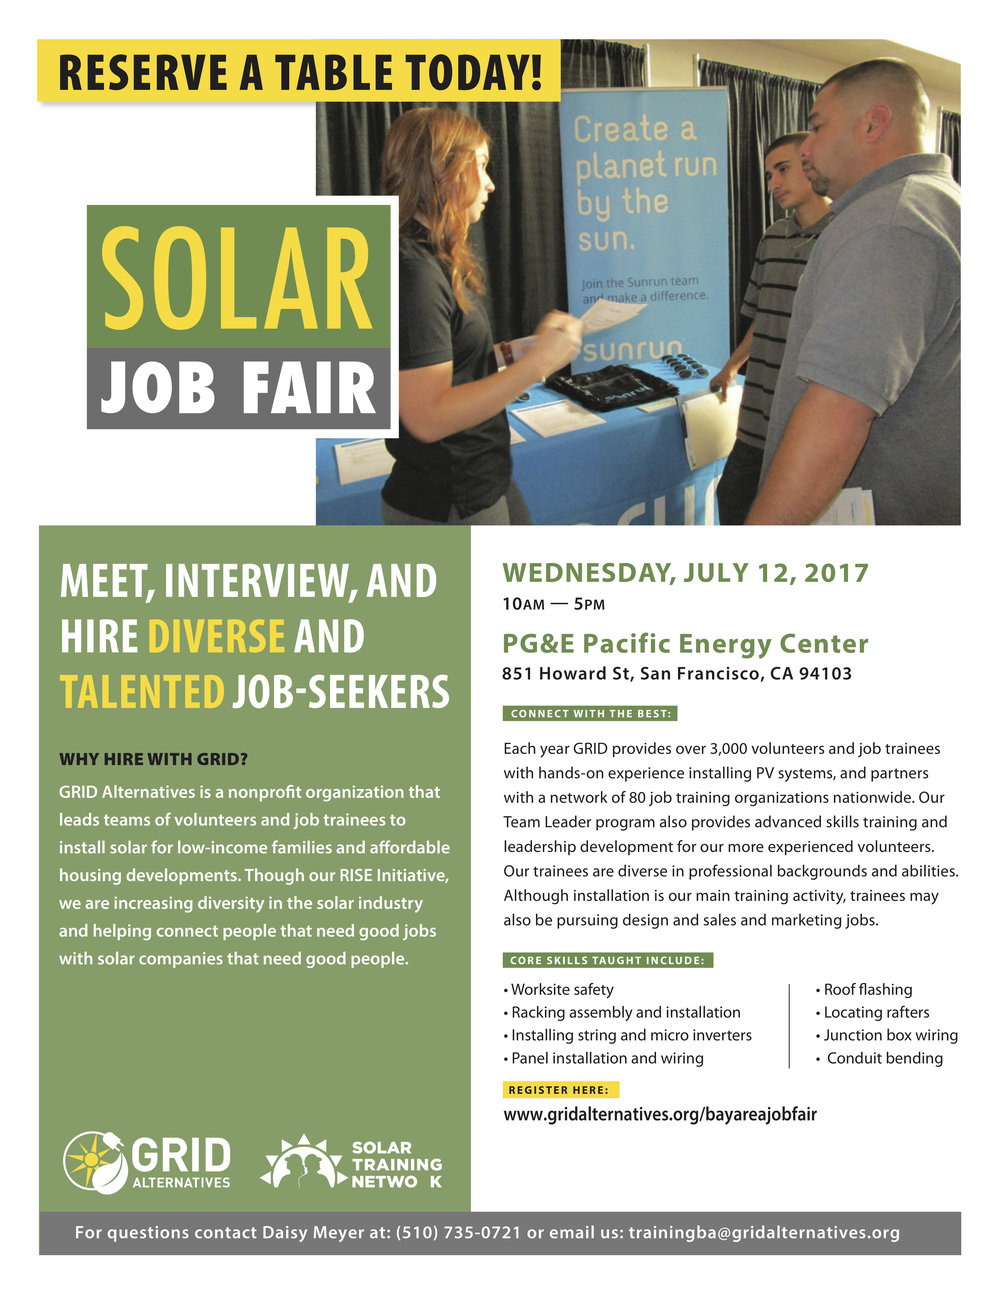 Solar Jobs Fair Flyer 2017